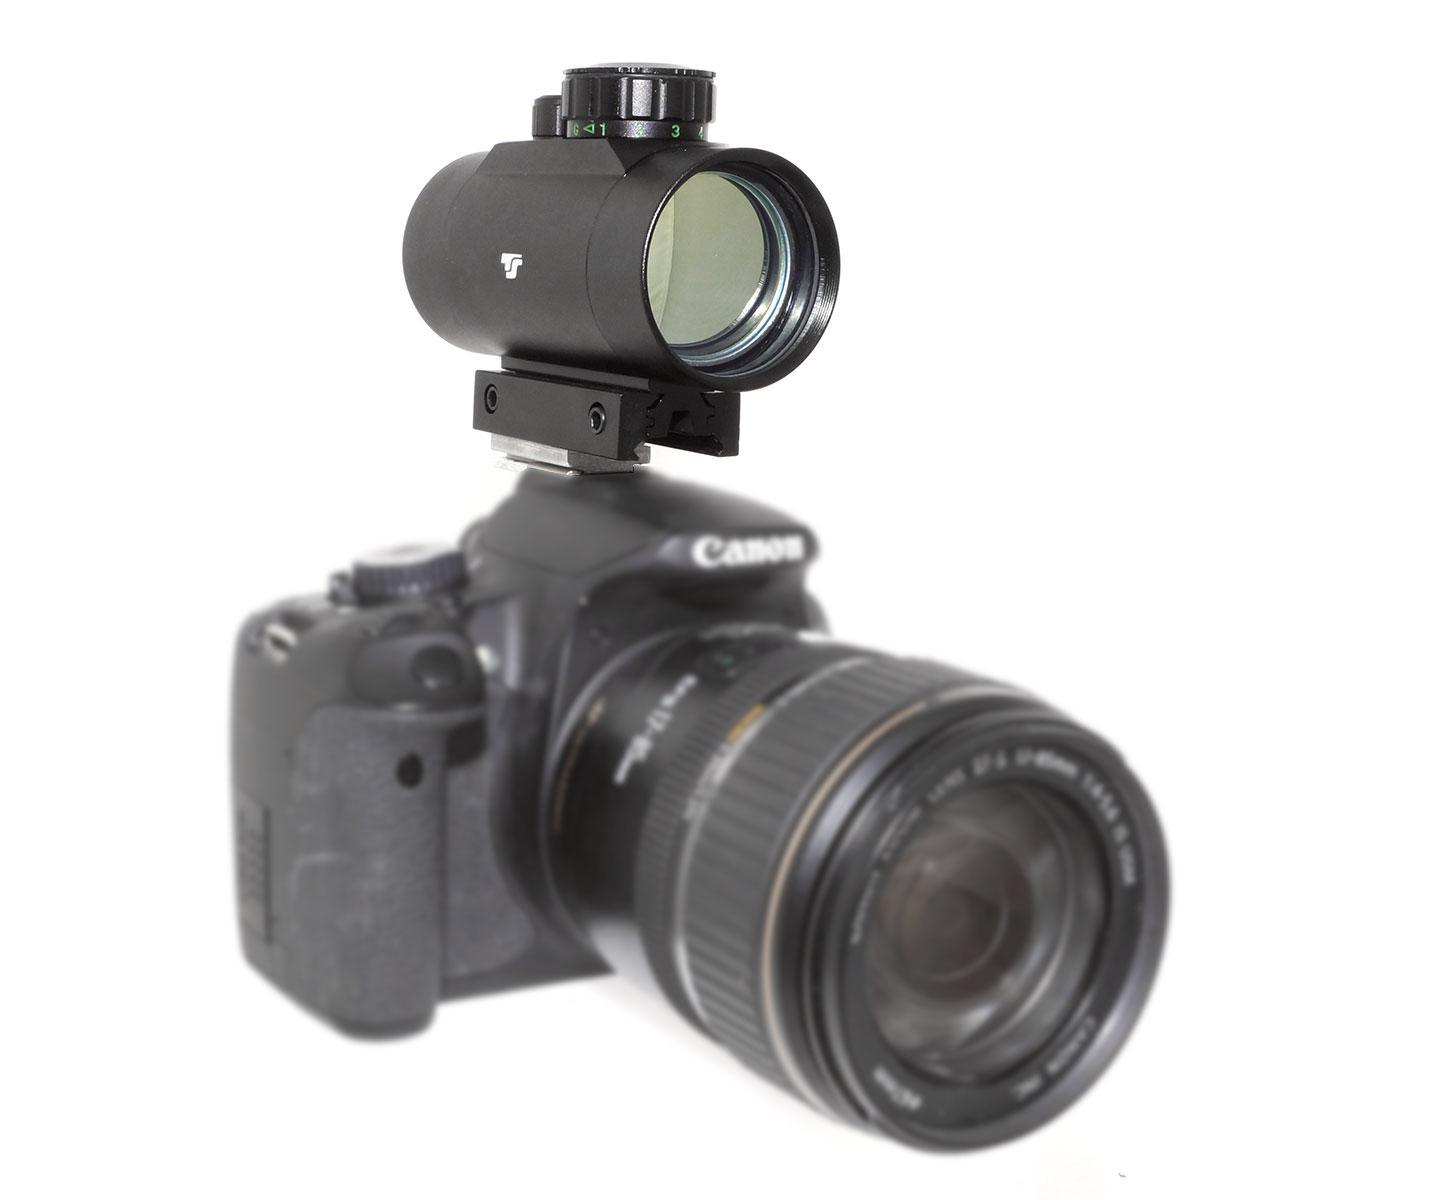 TS-Optics LED Red Dot Finder for DSLR cameras, made of metal [EN]